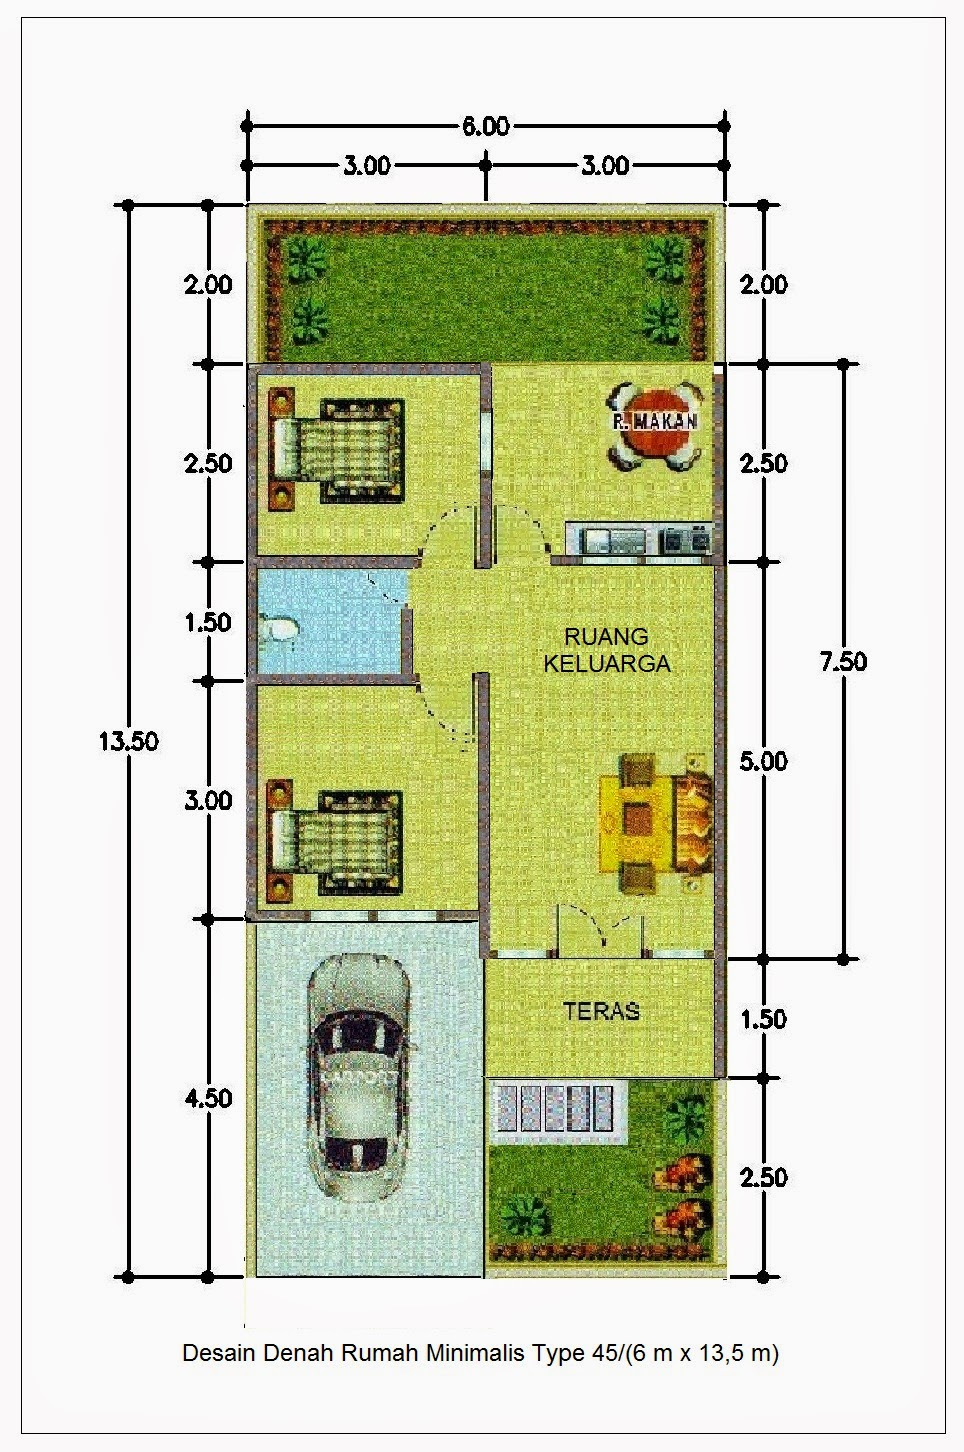 Model ideas Minimalist House Plan Type 45   a collection of ideas about home